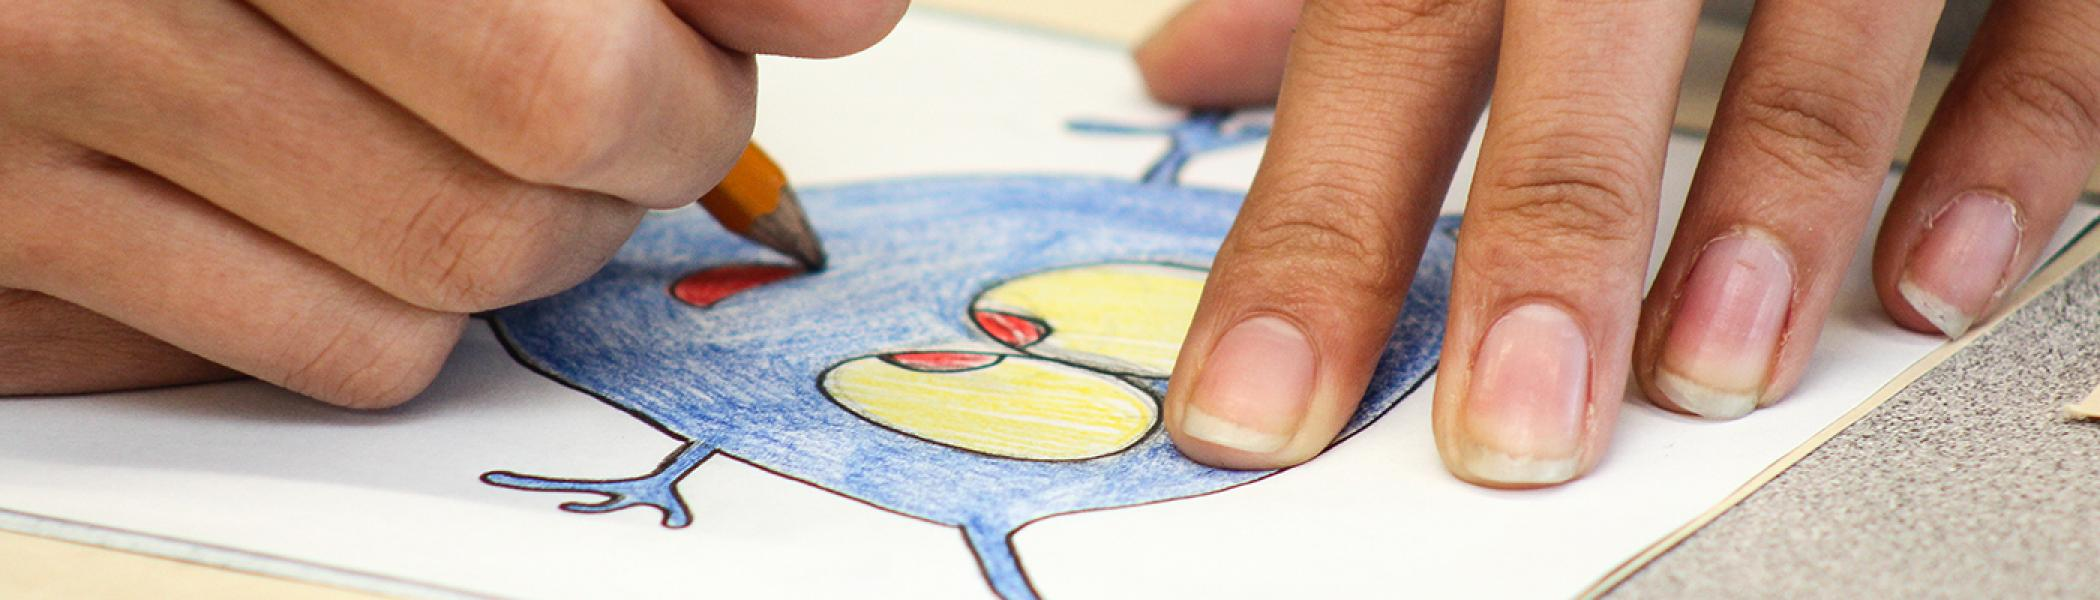 Closeup of a woman's hands colouring in an iluustration on a table